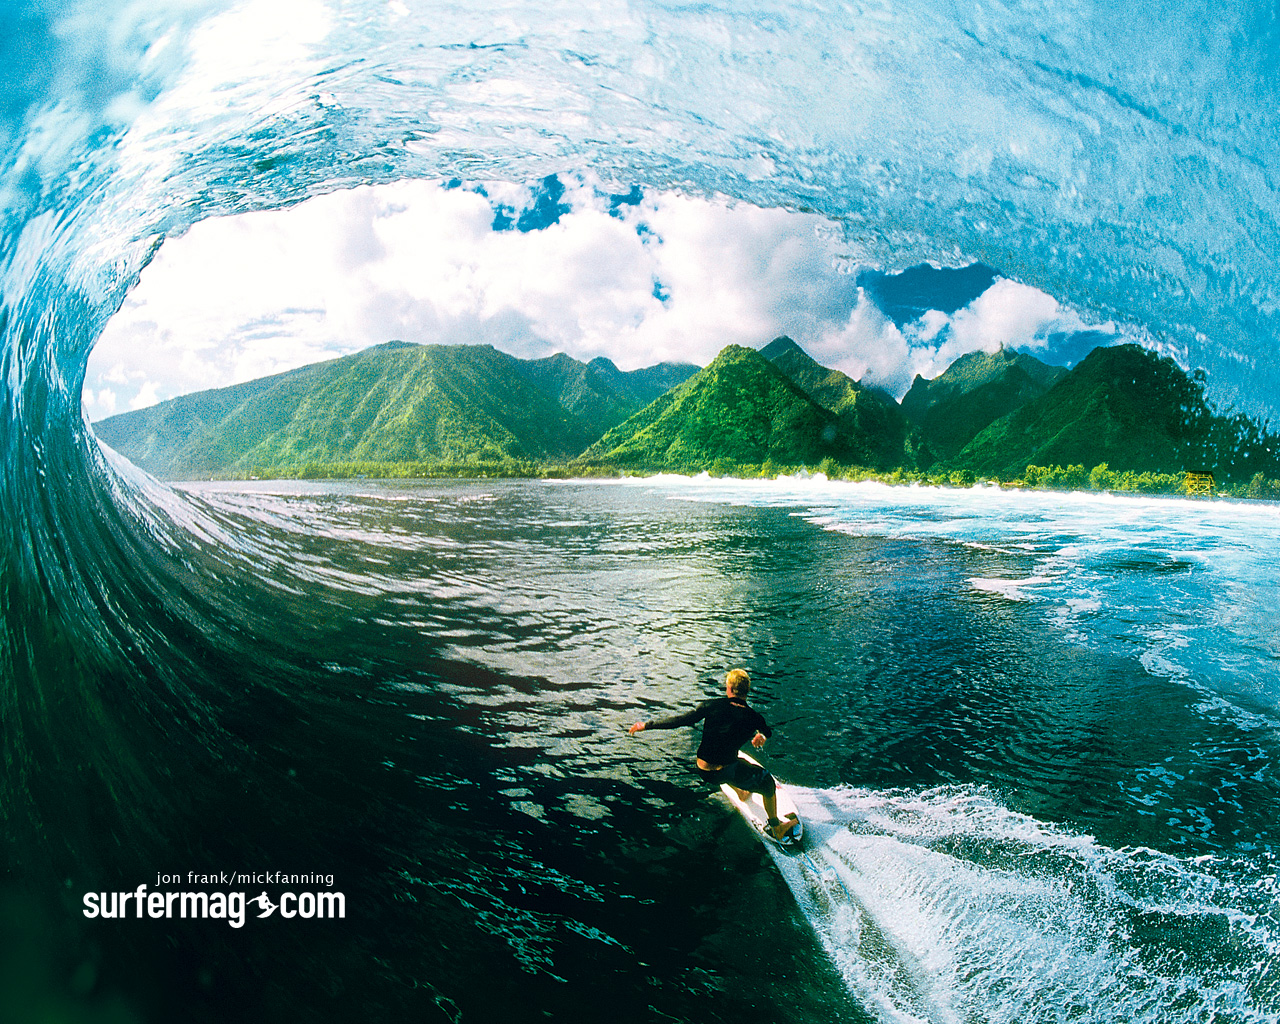 surfing surfingjpg   535778   Image Hosting at TurboImageHost 1280x1024